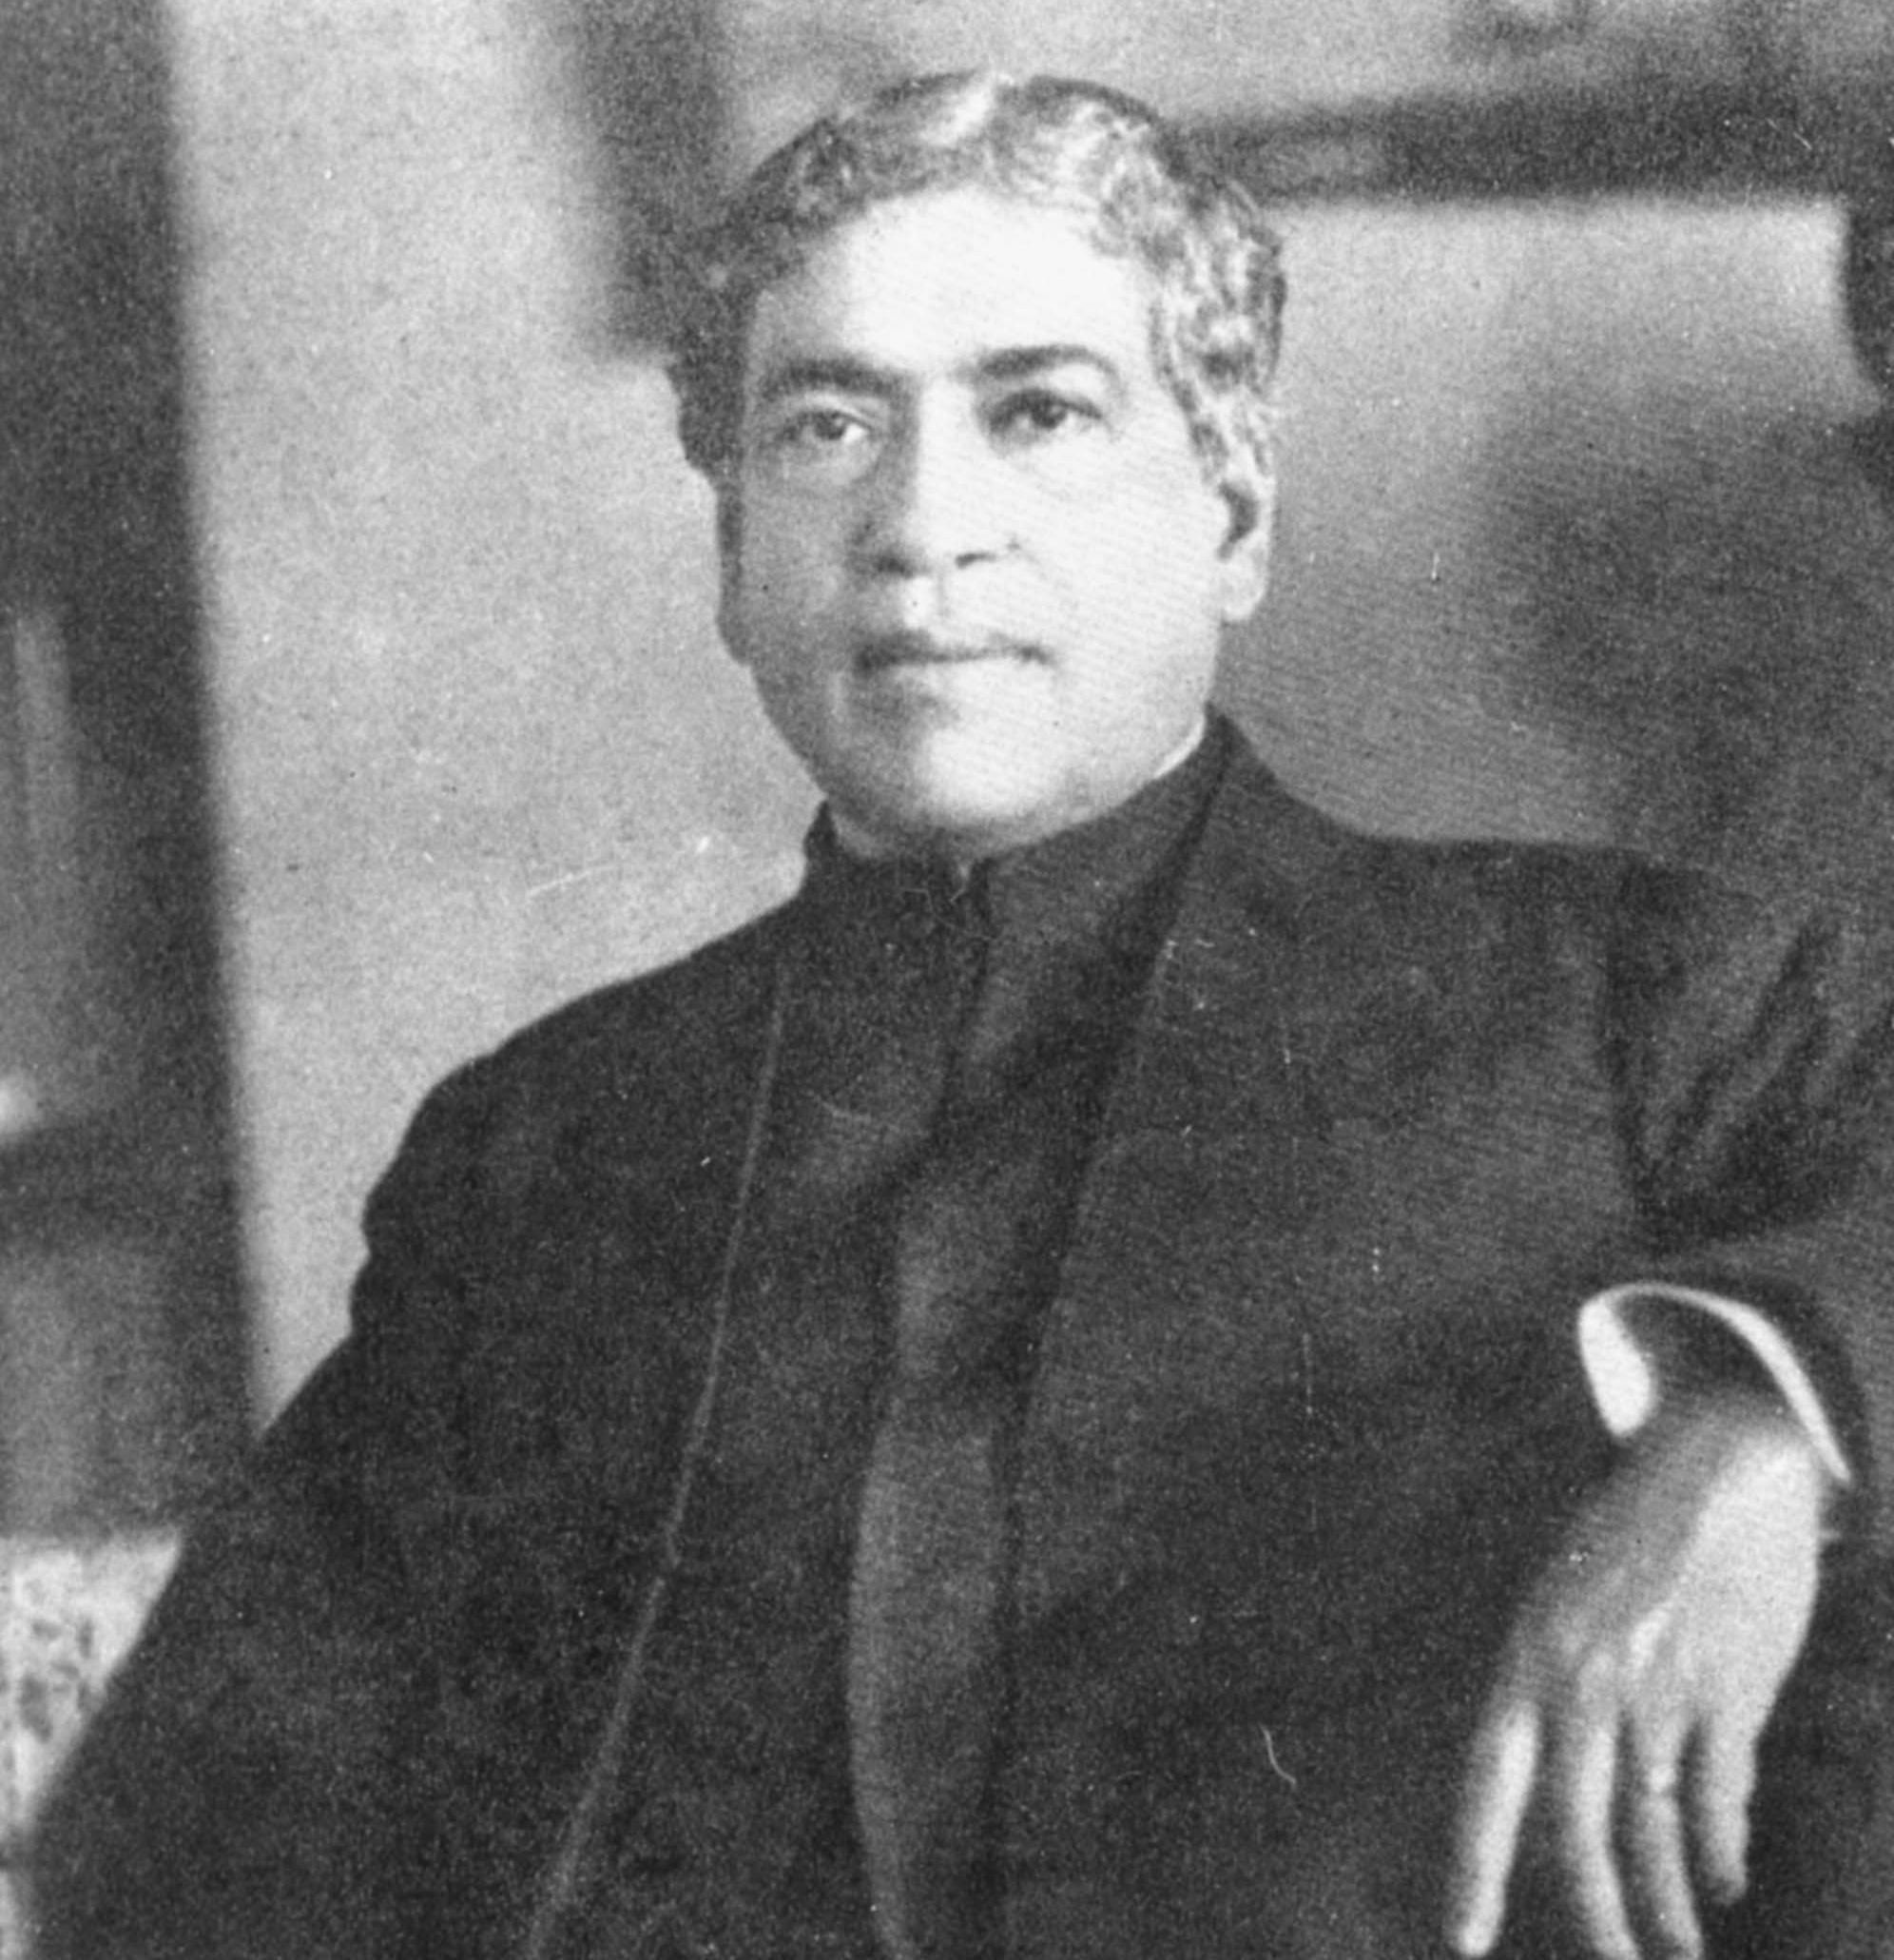 A tribute to Jagadish Bose, who proved plants have life